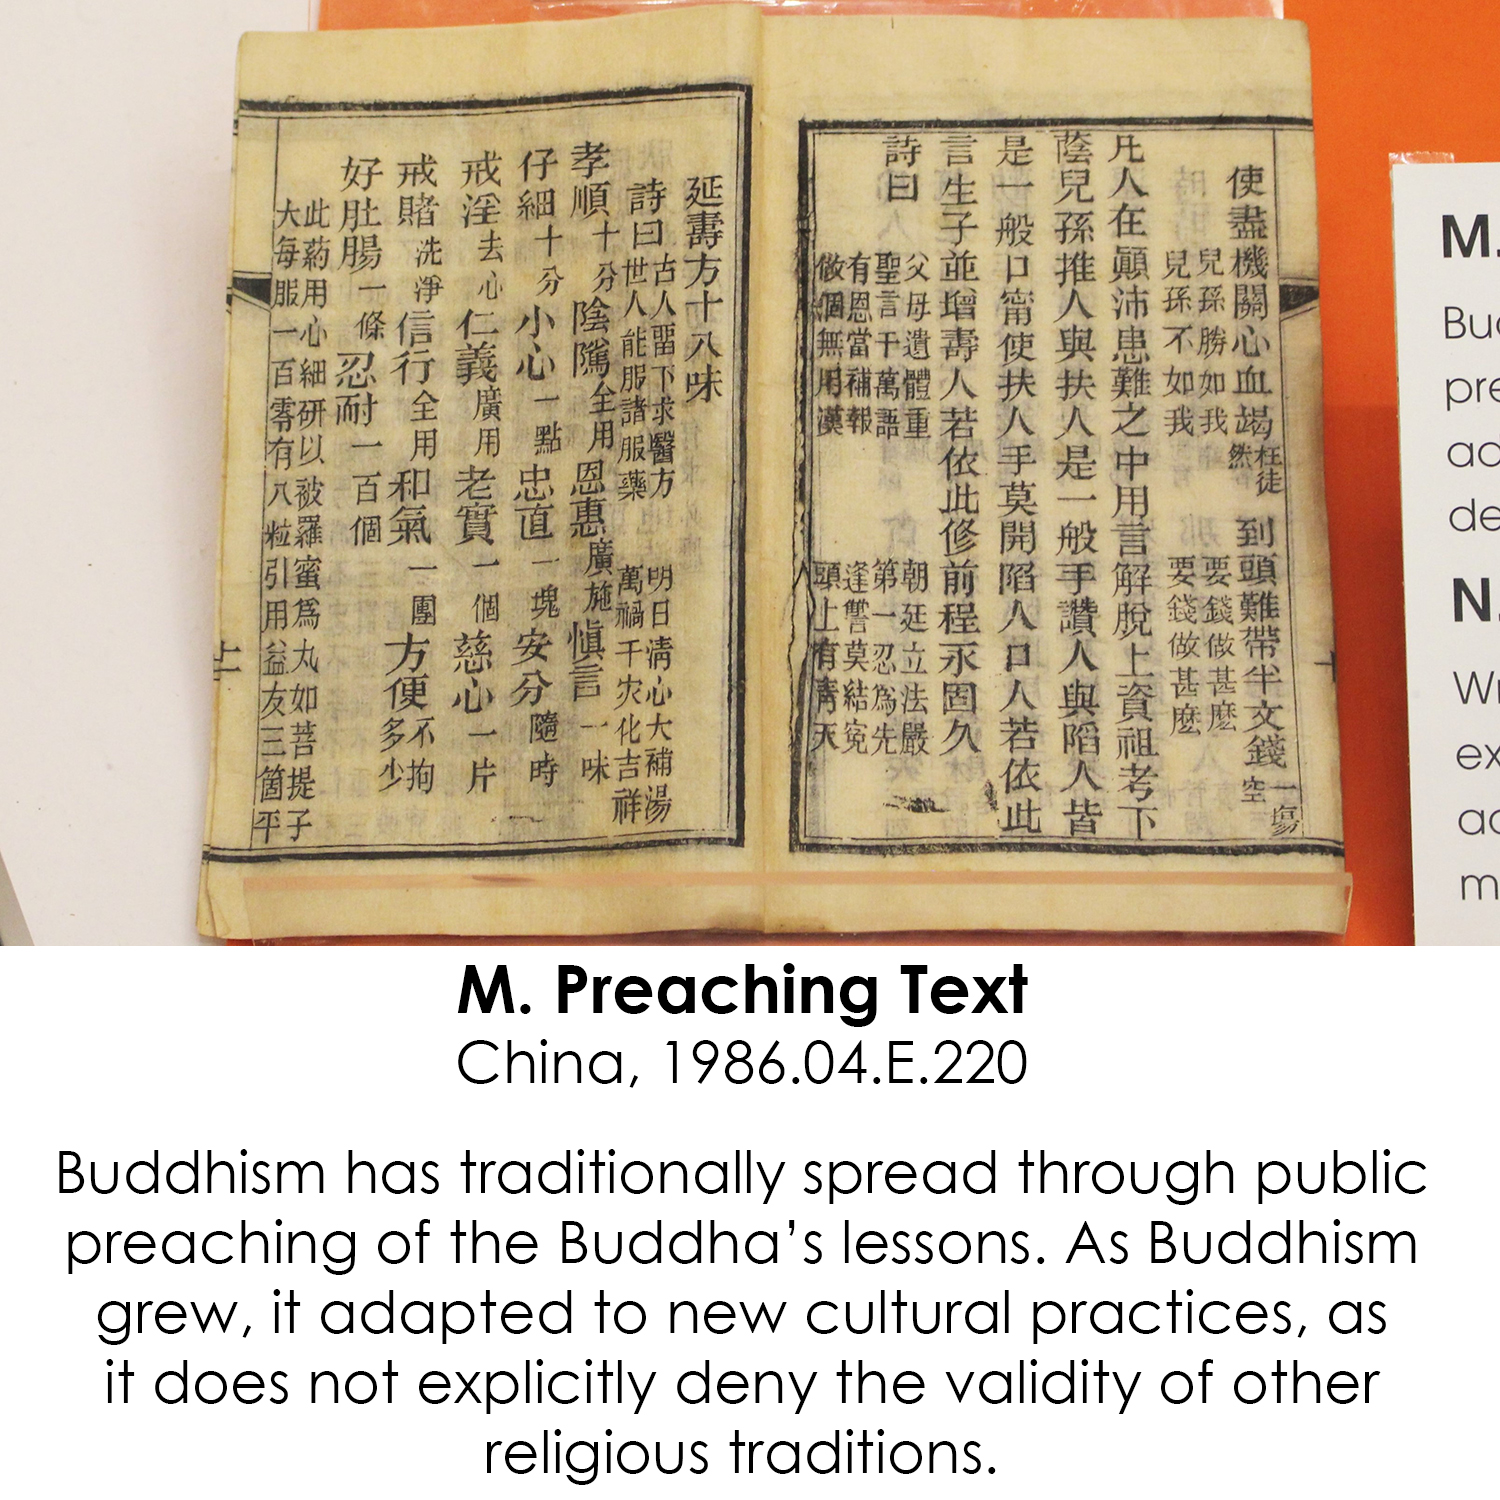 Buddhist Preaching Text from China